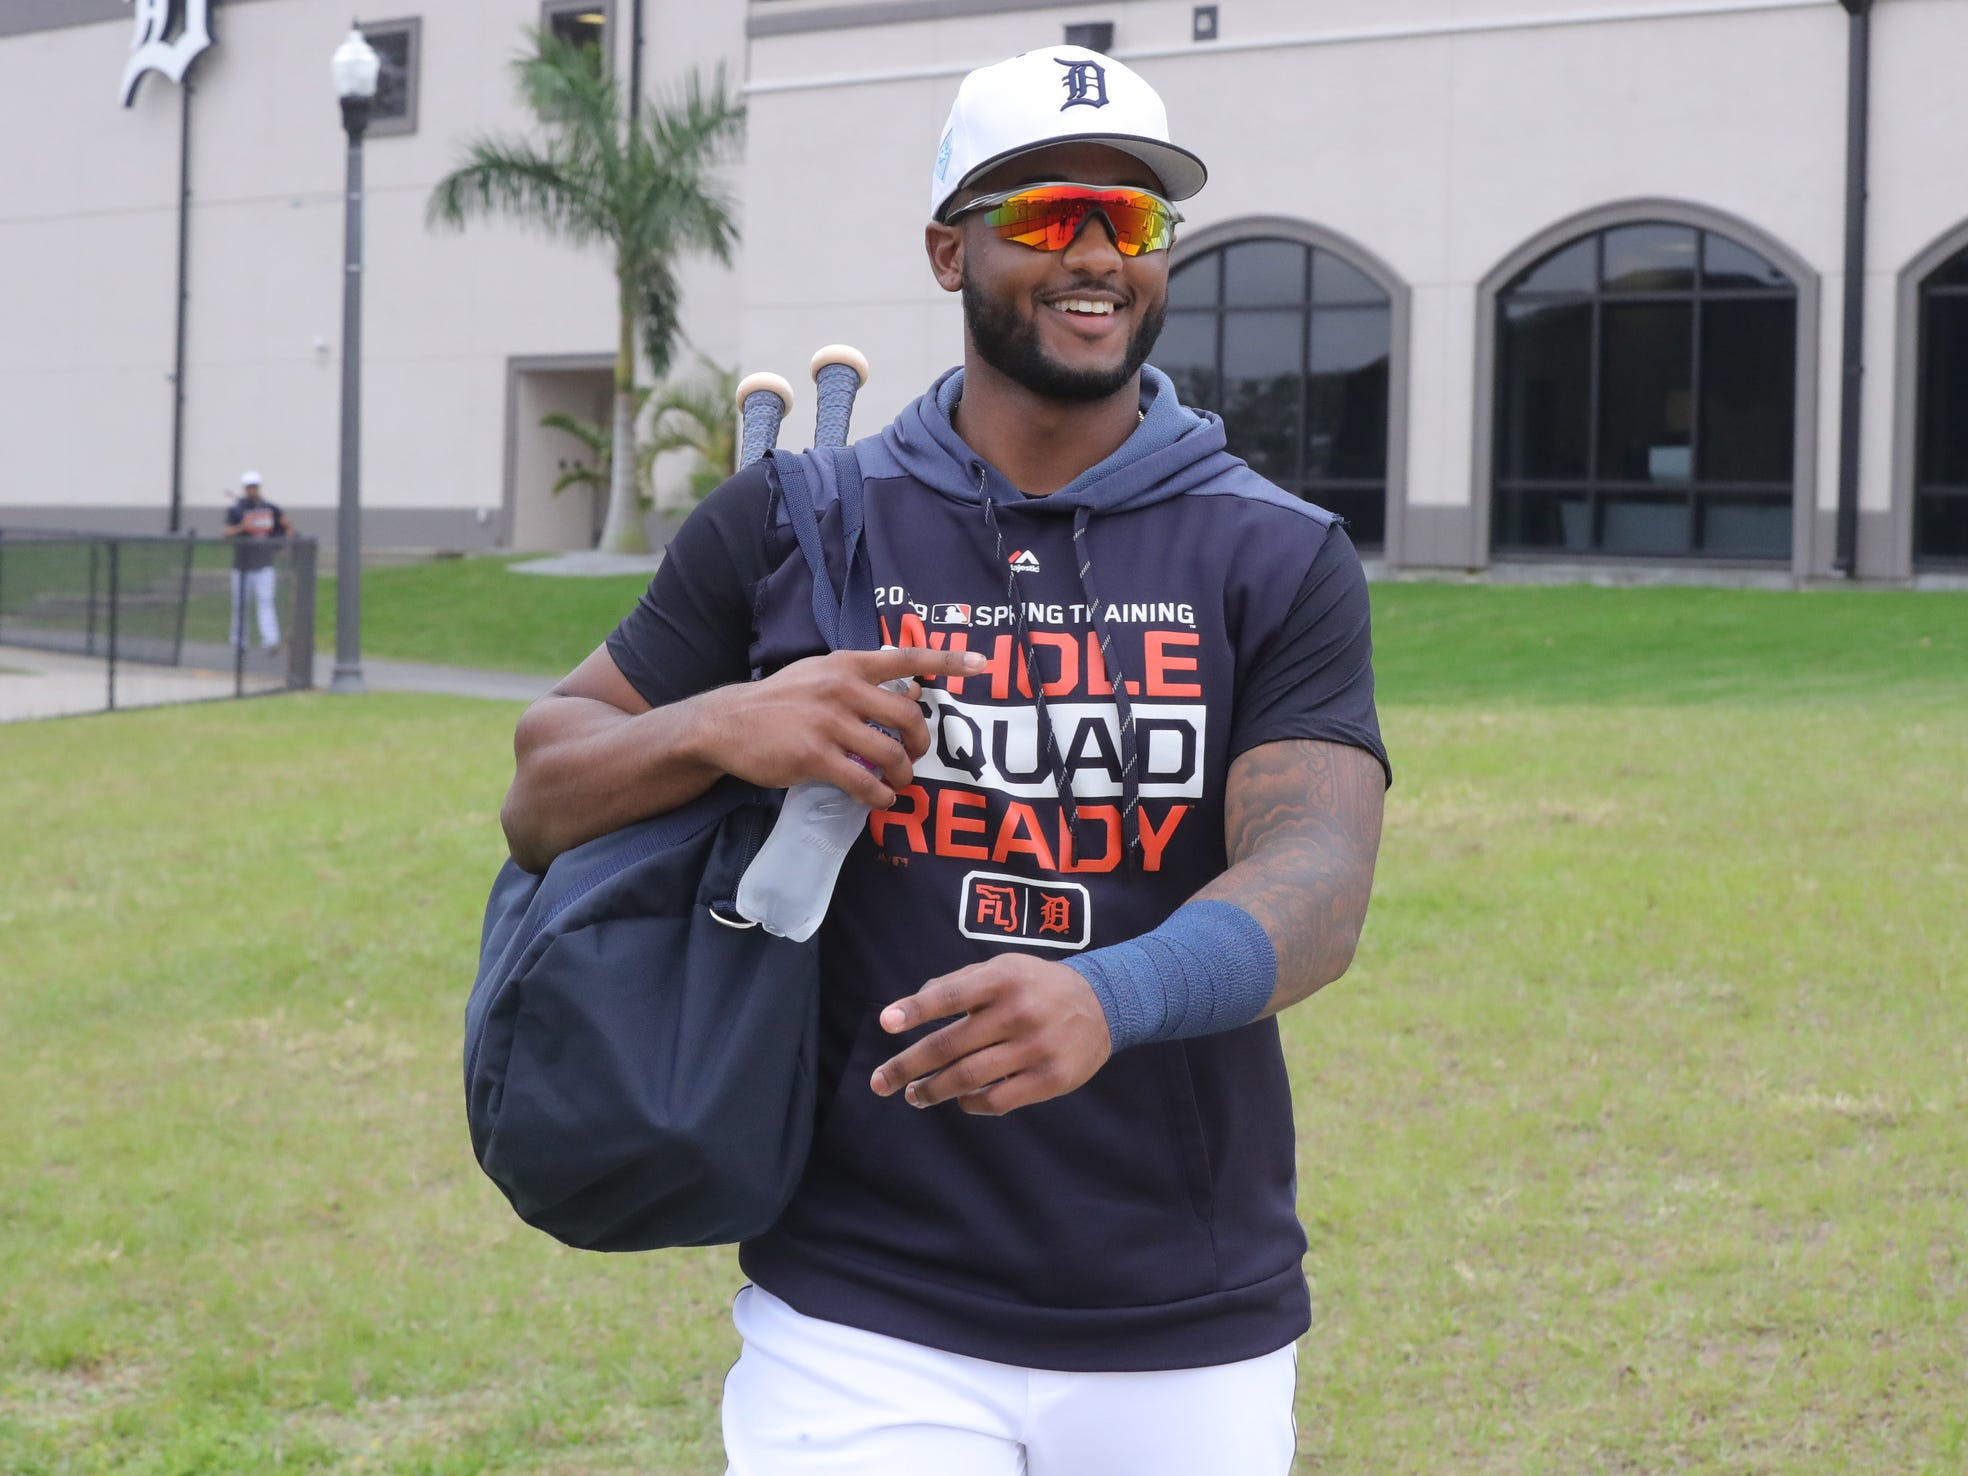 Tigers infielder Niko Goodrum walks to the field for the first full team spring training practice on Monday, Feb. 18, 2019, at Joker Marchant Stadium in Lakeland, Florida.